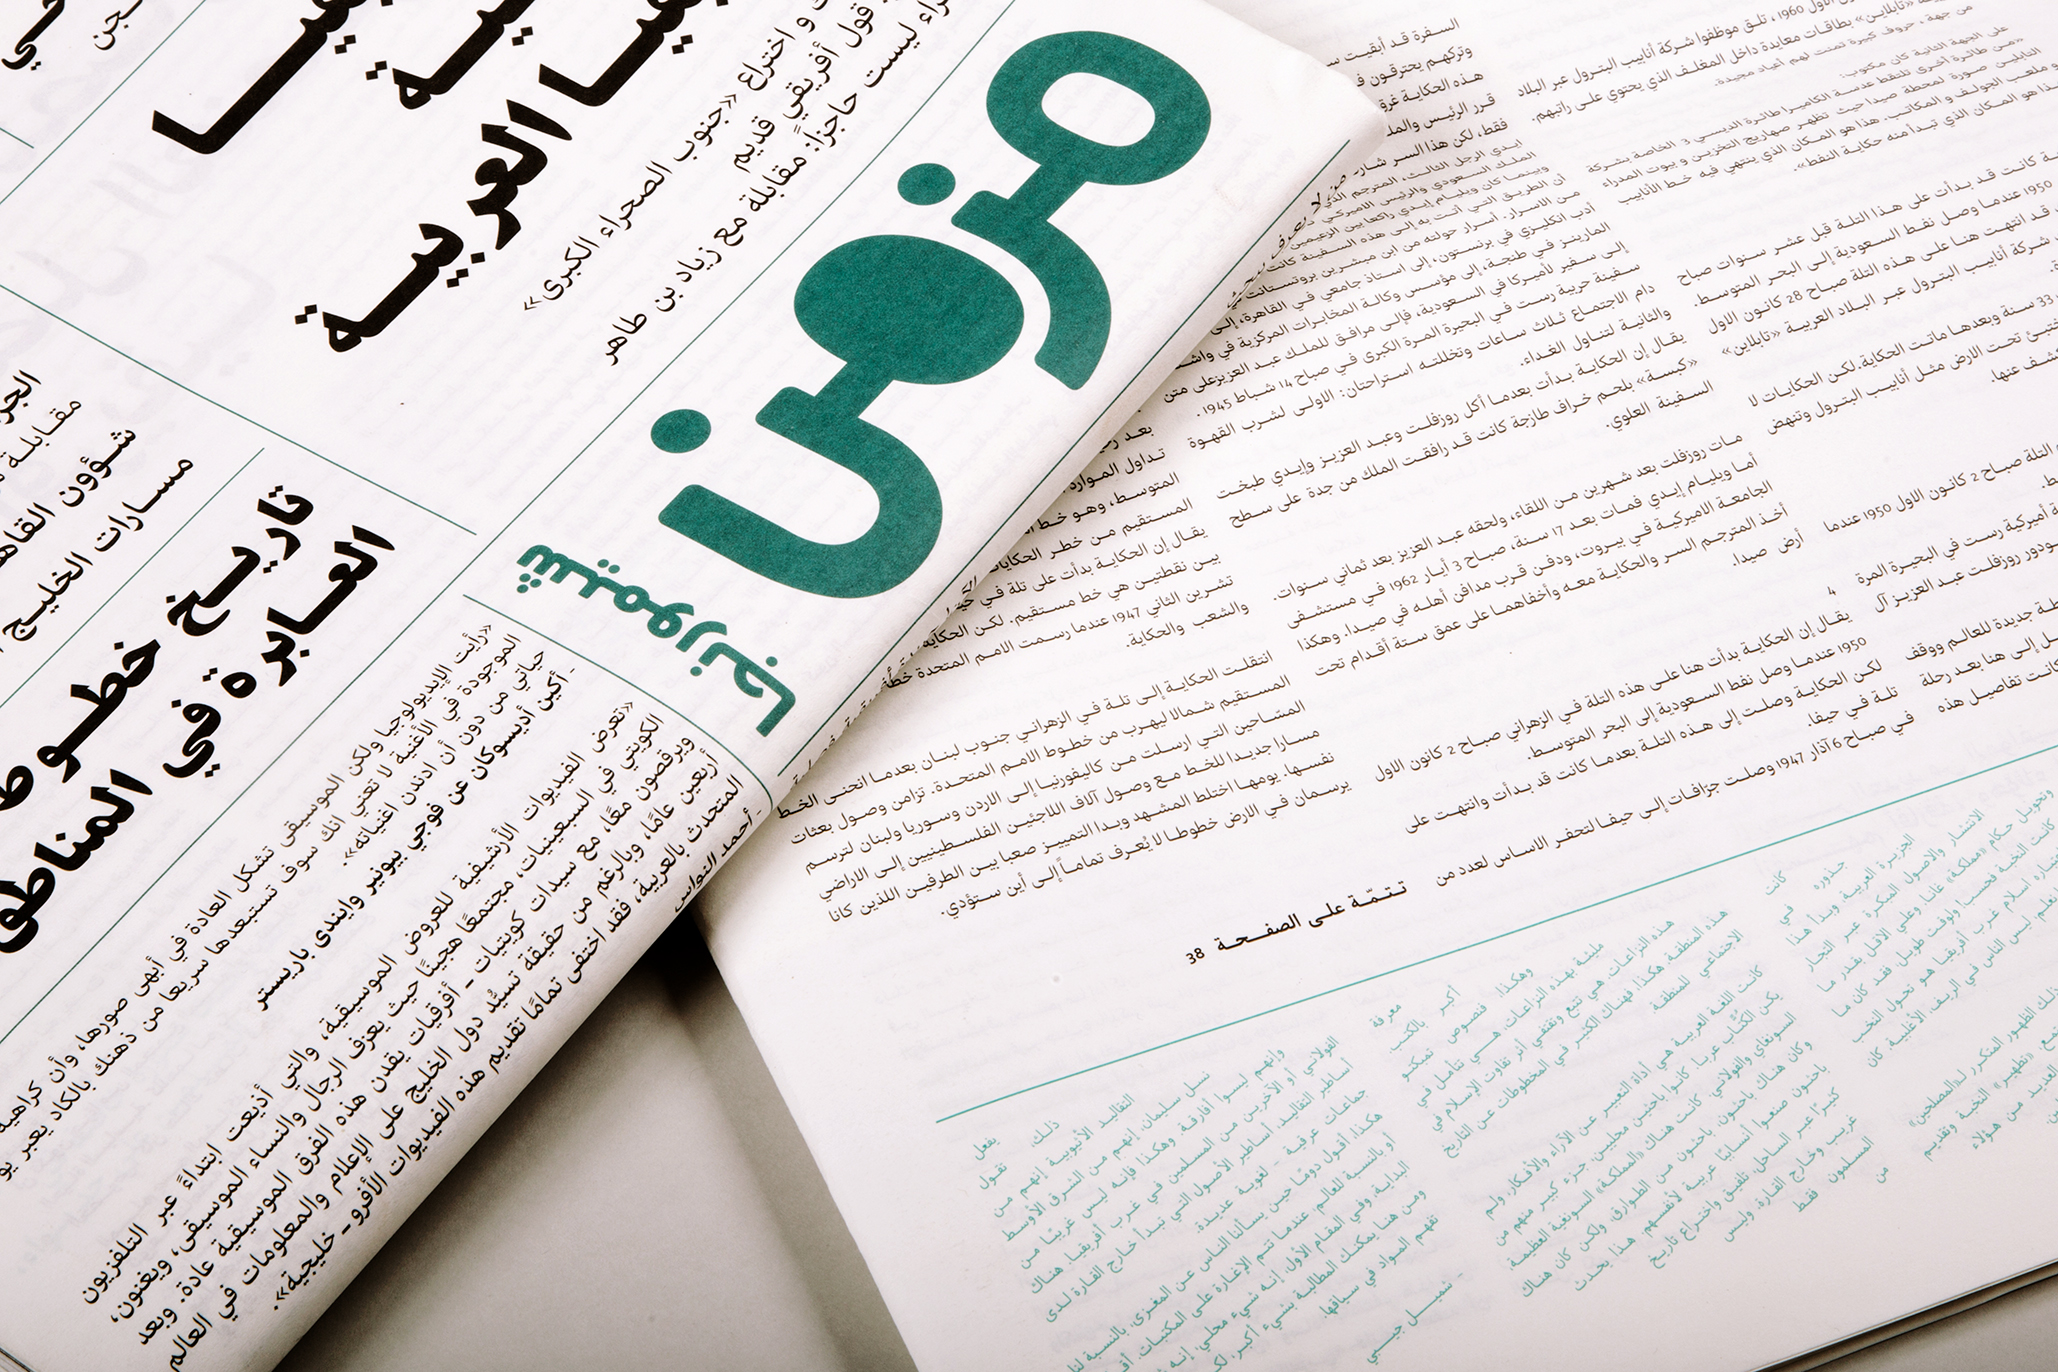 Publication design for  Chimurenga Chronic 's one-off Arabic edition designed for the Sharjah Biennial, 2016. This project was realized during my work at Studio Safar - more images  here.